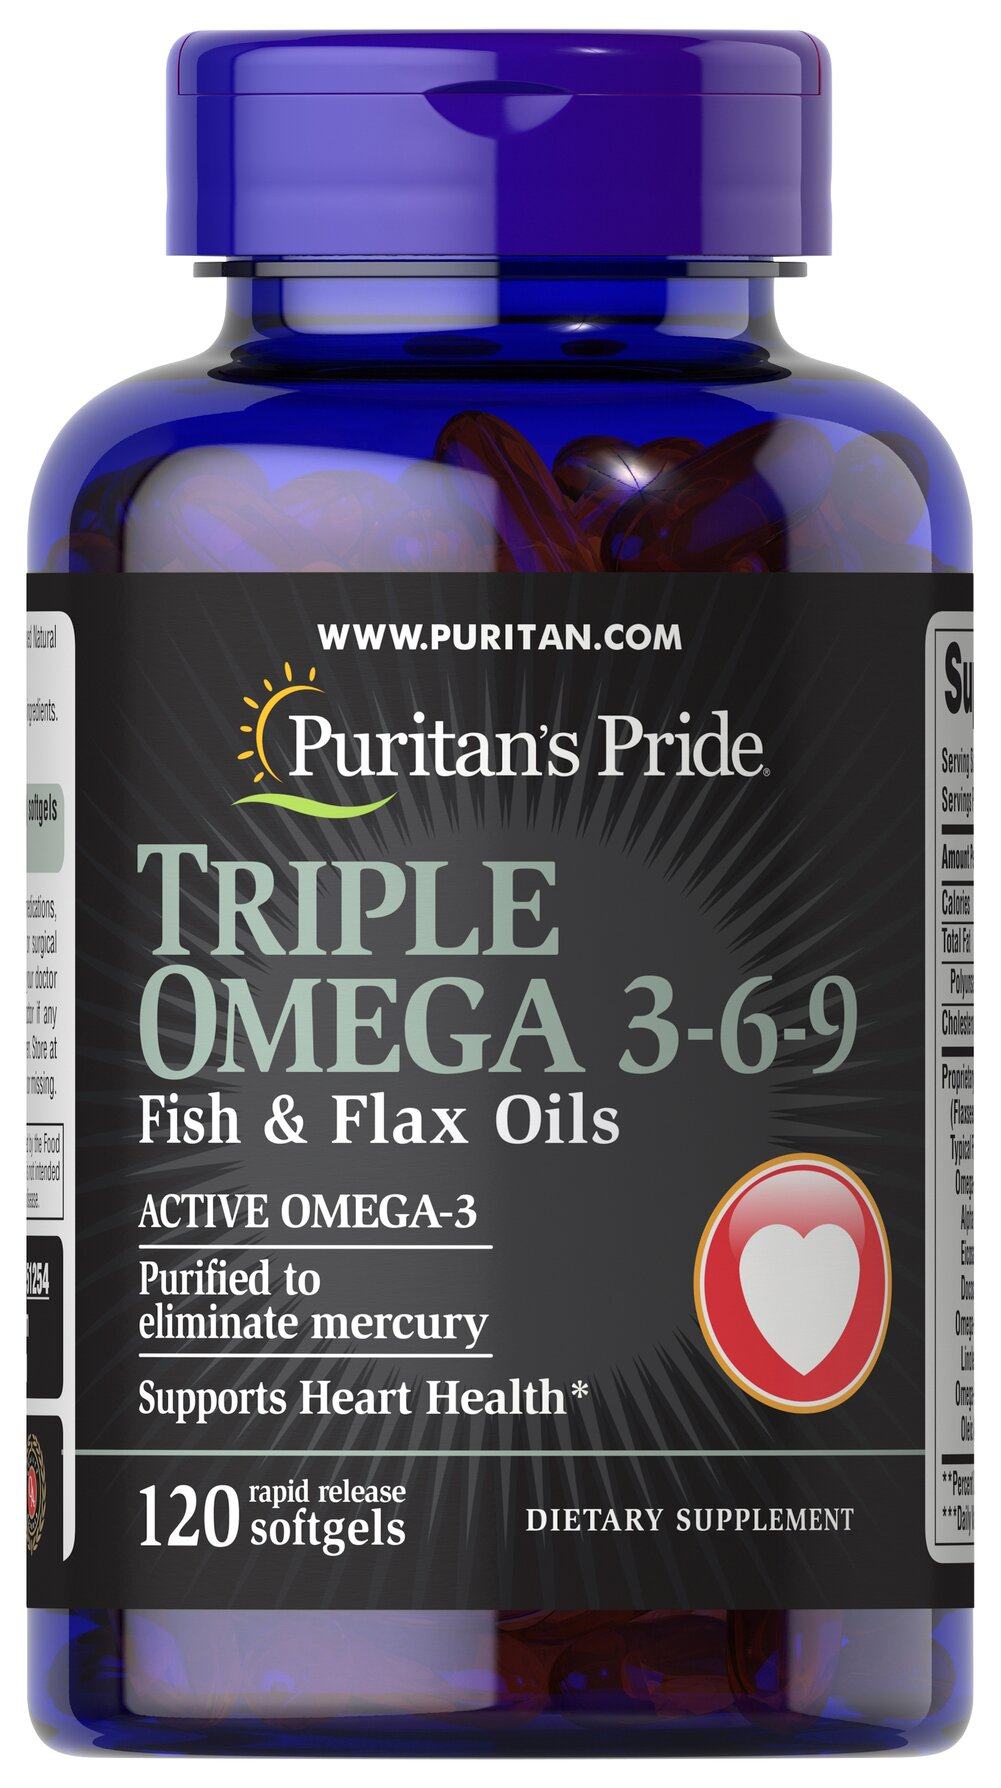 Triple Omega 3-6-9 Fish & Flax Oils  120 Softgels  $11.99